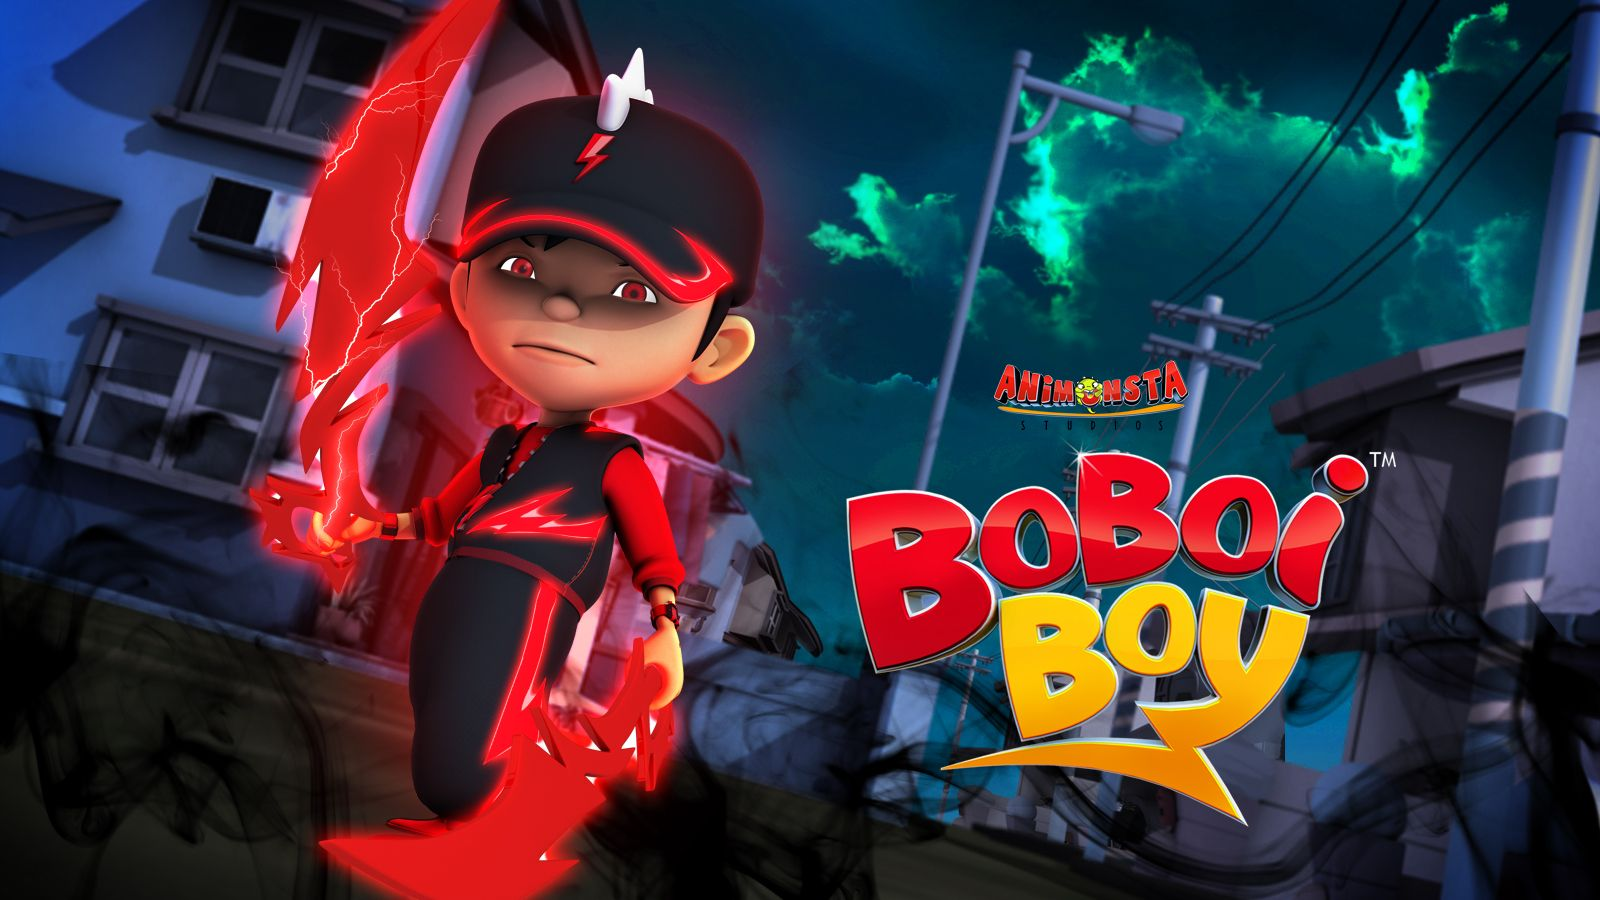 32 Gambar Boboiboy Galaxy The Movie 2 Film animasi